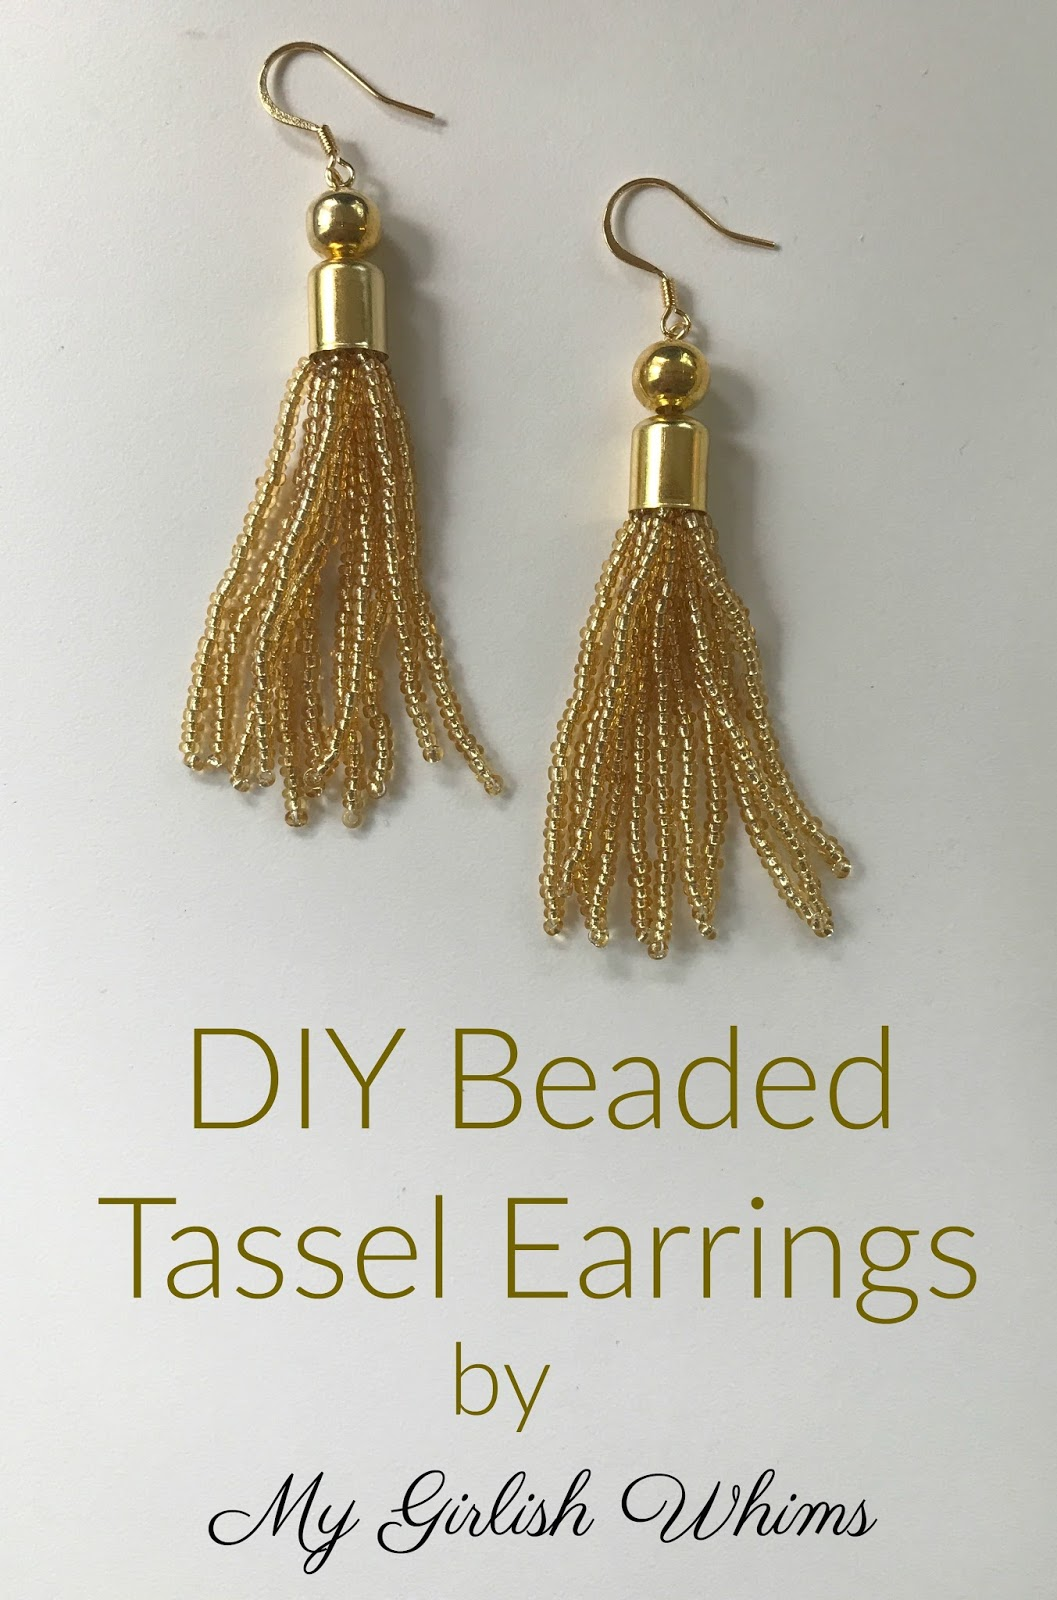 DIY Beaded Tassel Earrings - My Girlish Whims